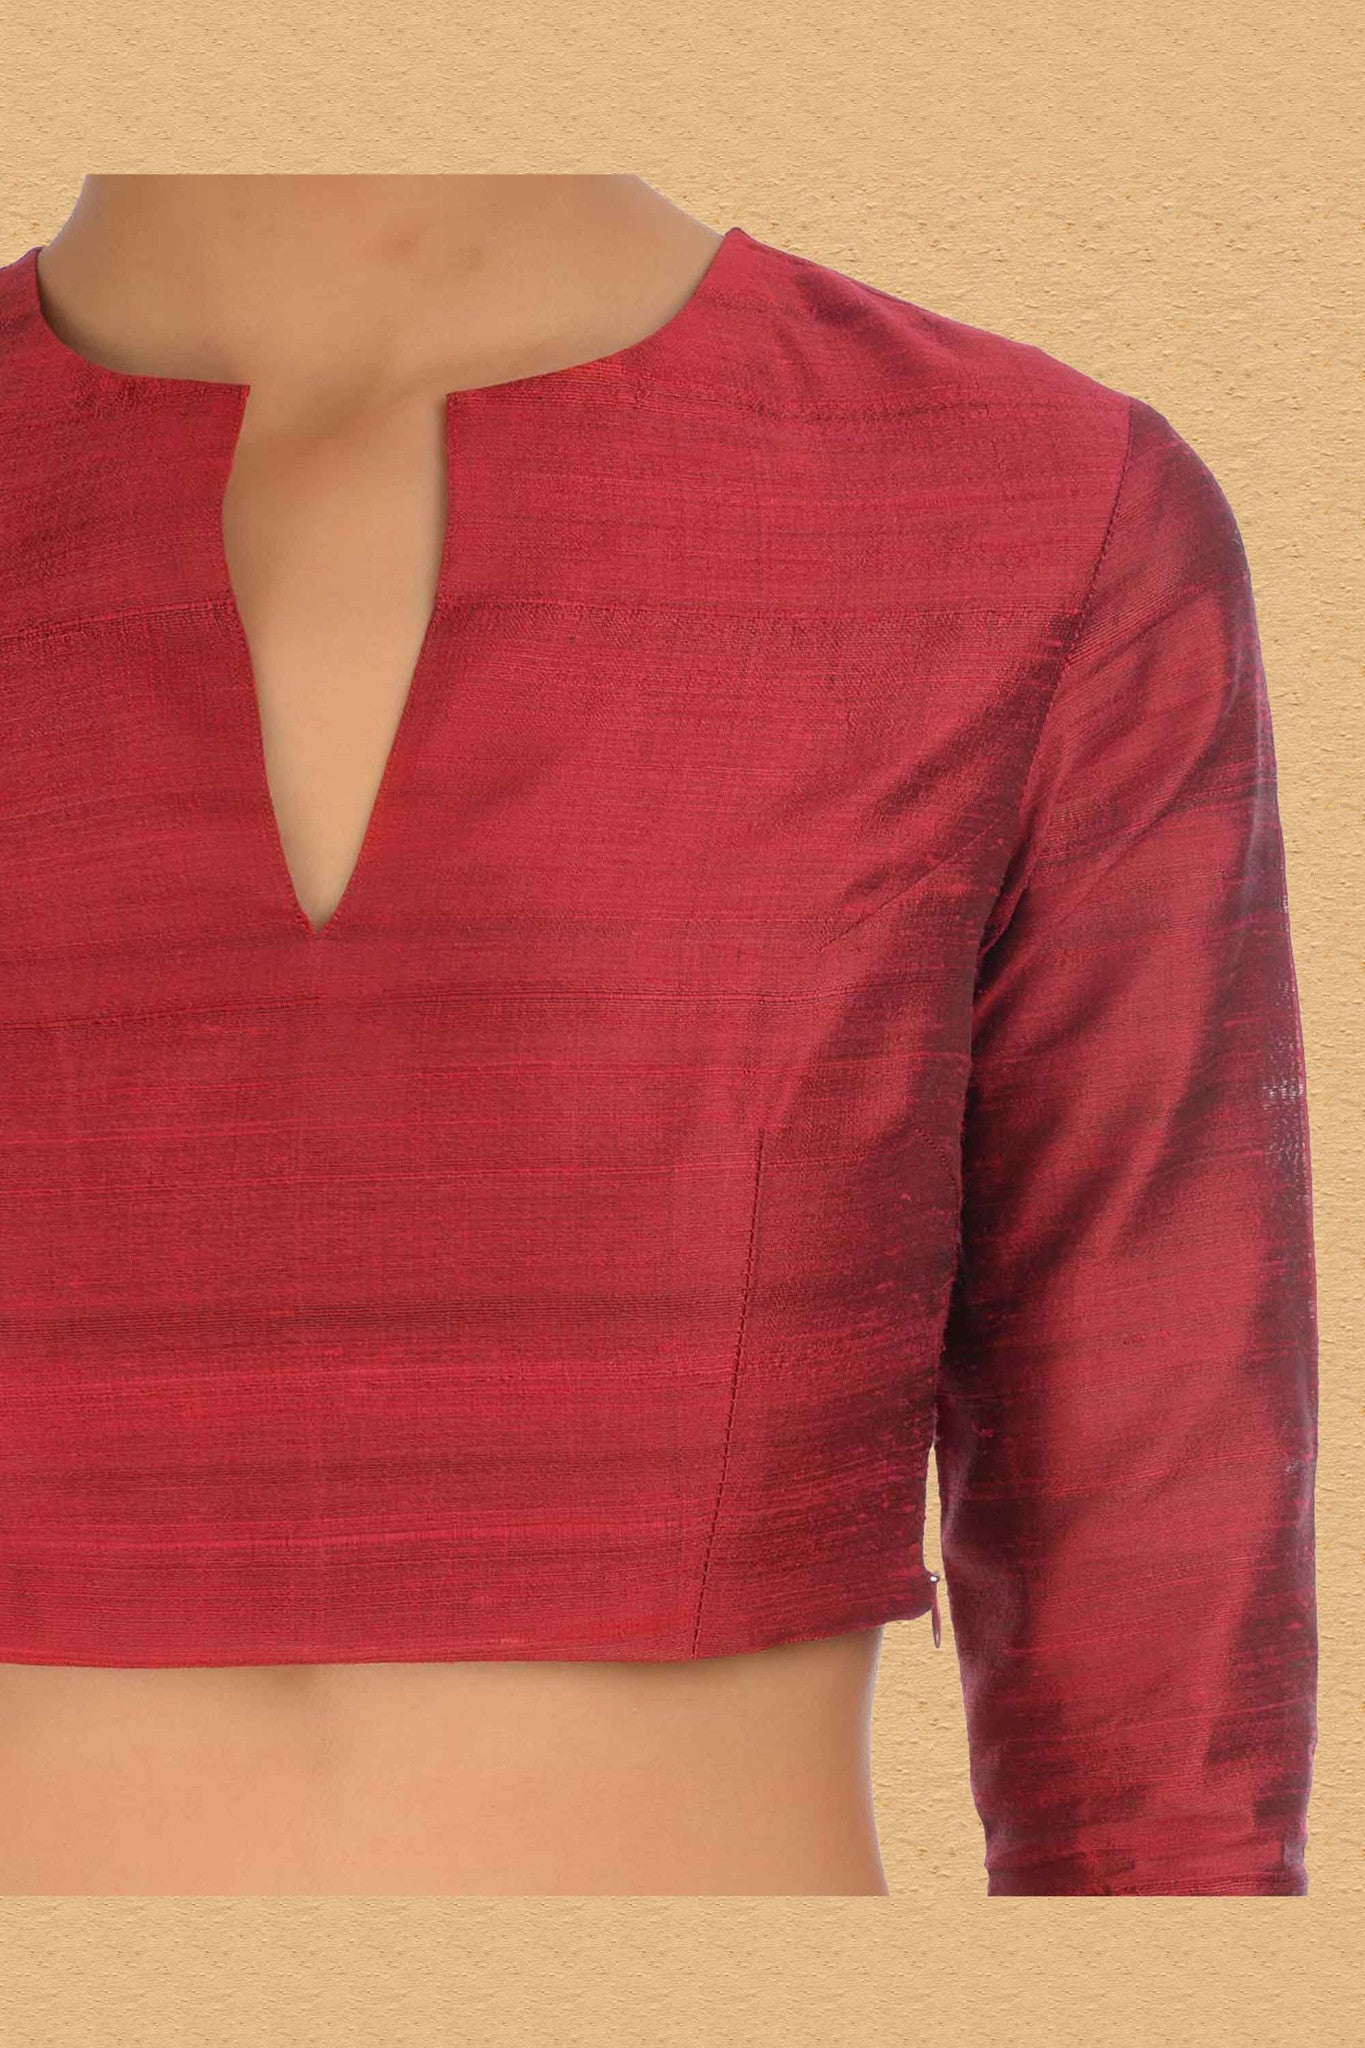 Indian Red Blouse With Split Neck CloseUp